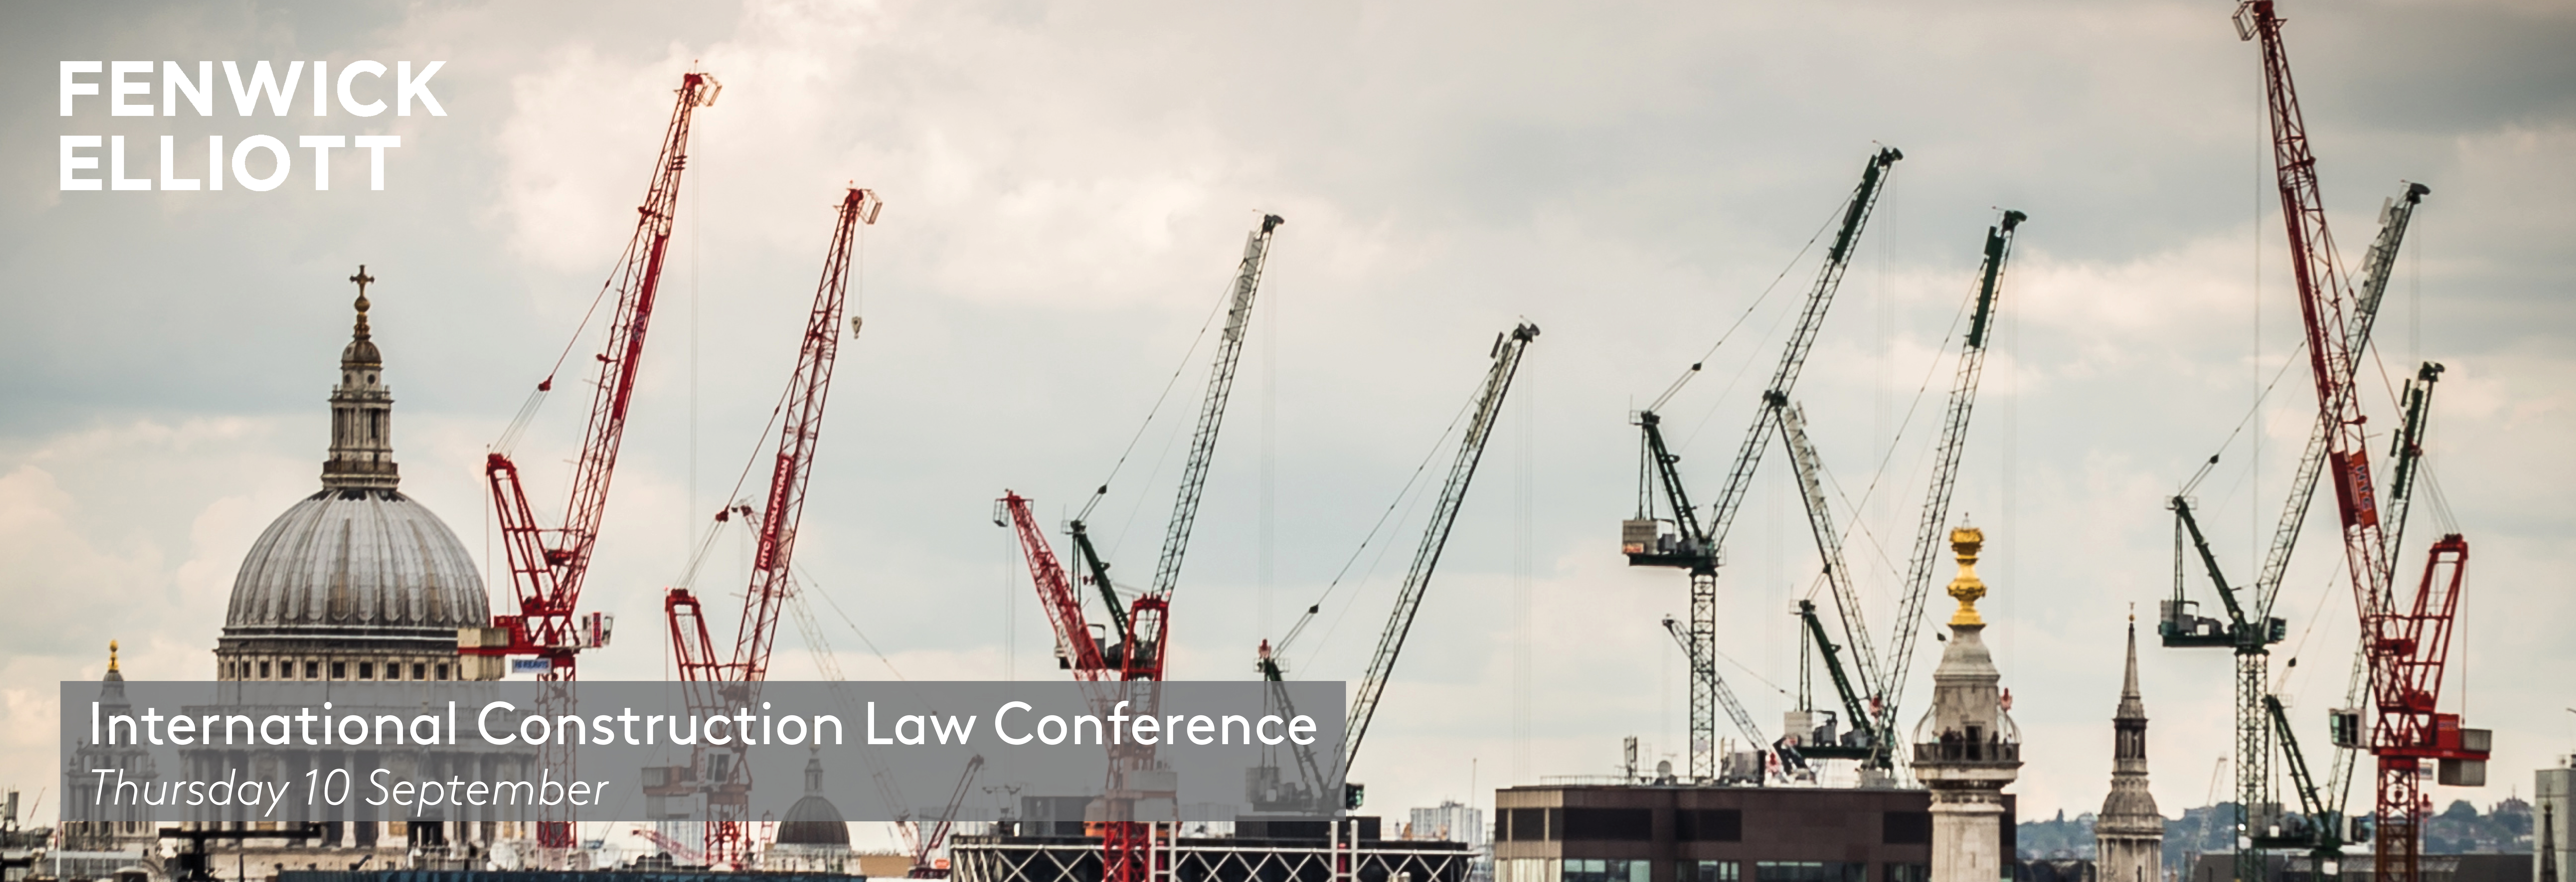 International Construction Law Conference  banner